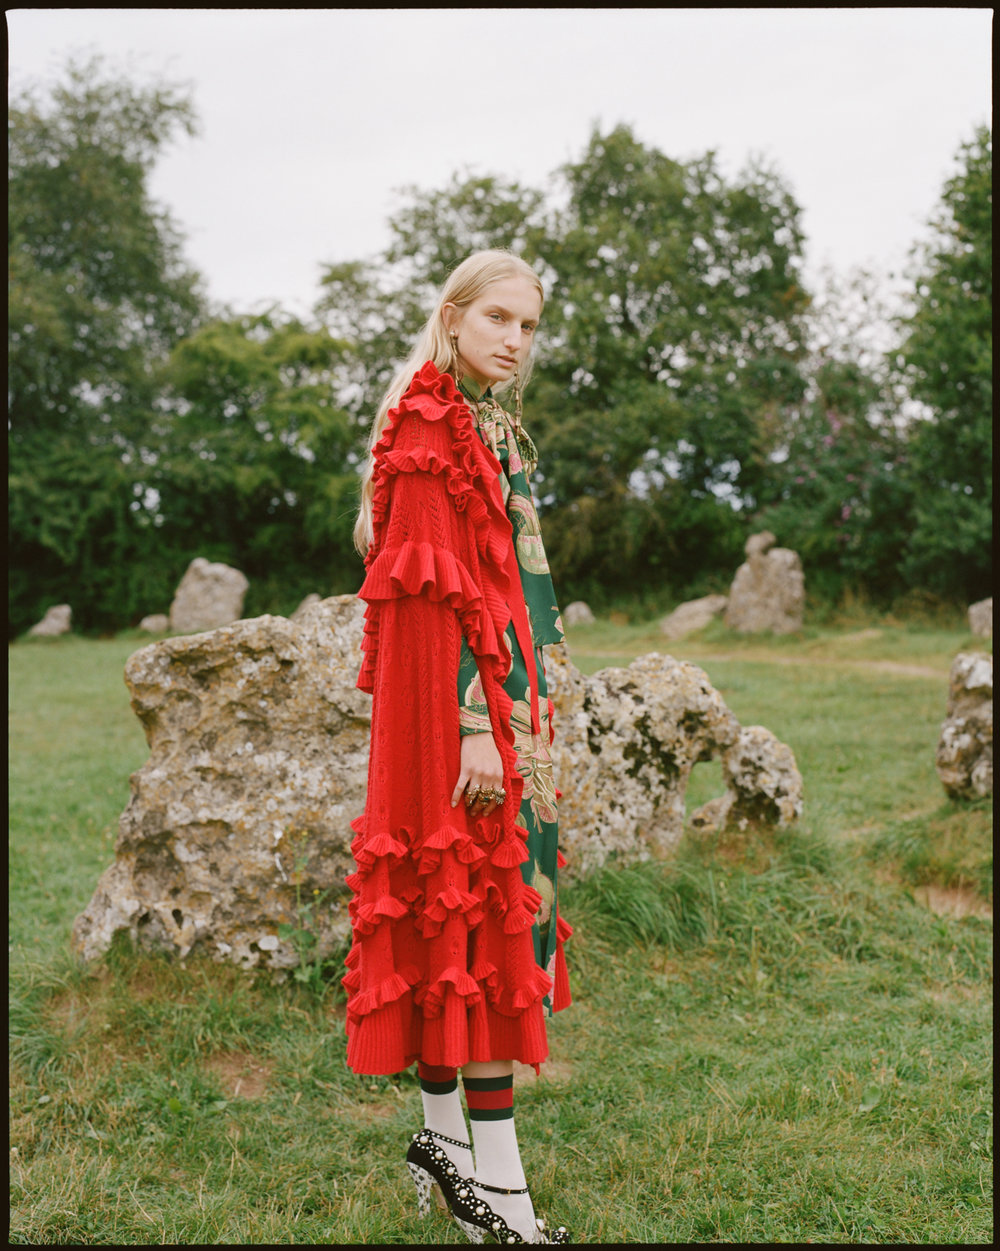 amber_mahoney_lula_japan_english_countryside_fashion_editorial_film_002.jpg